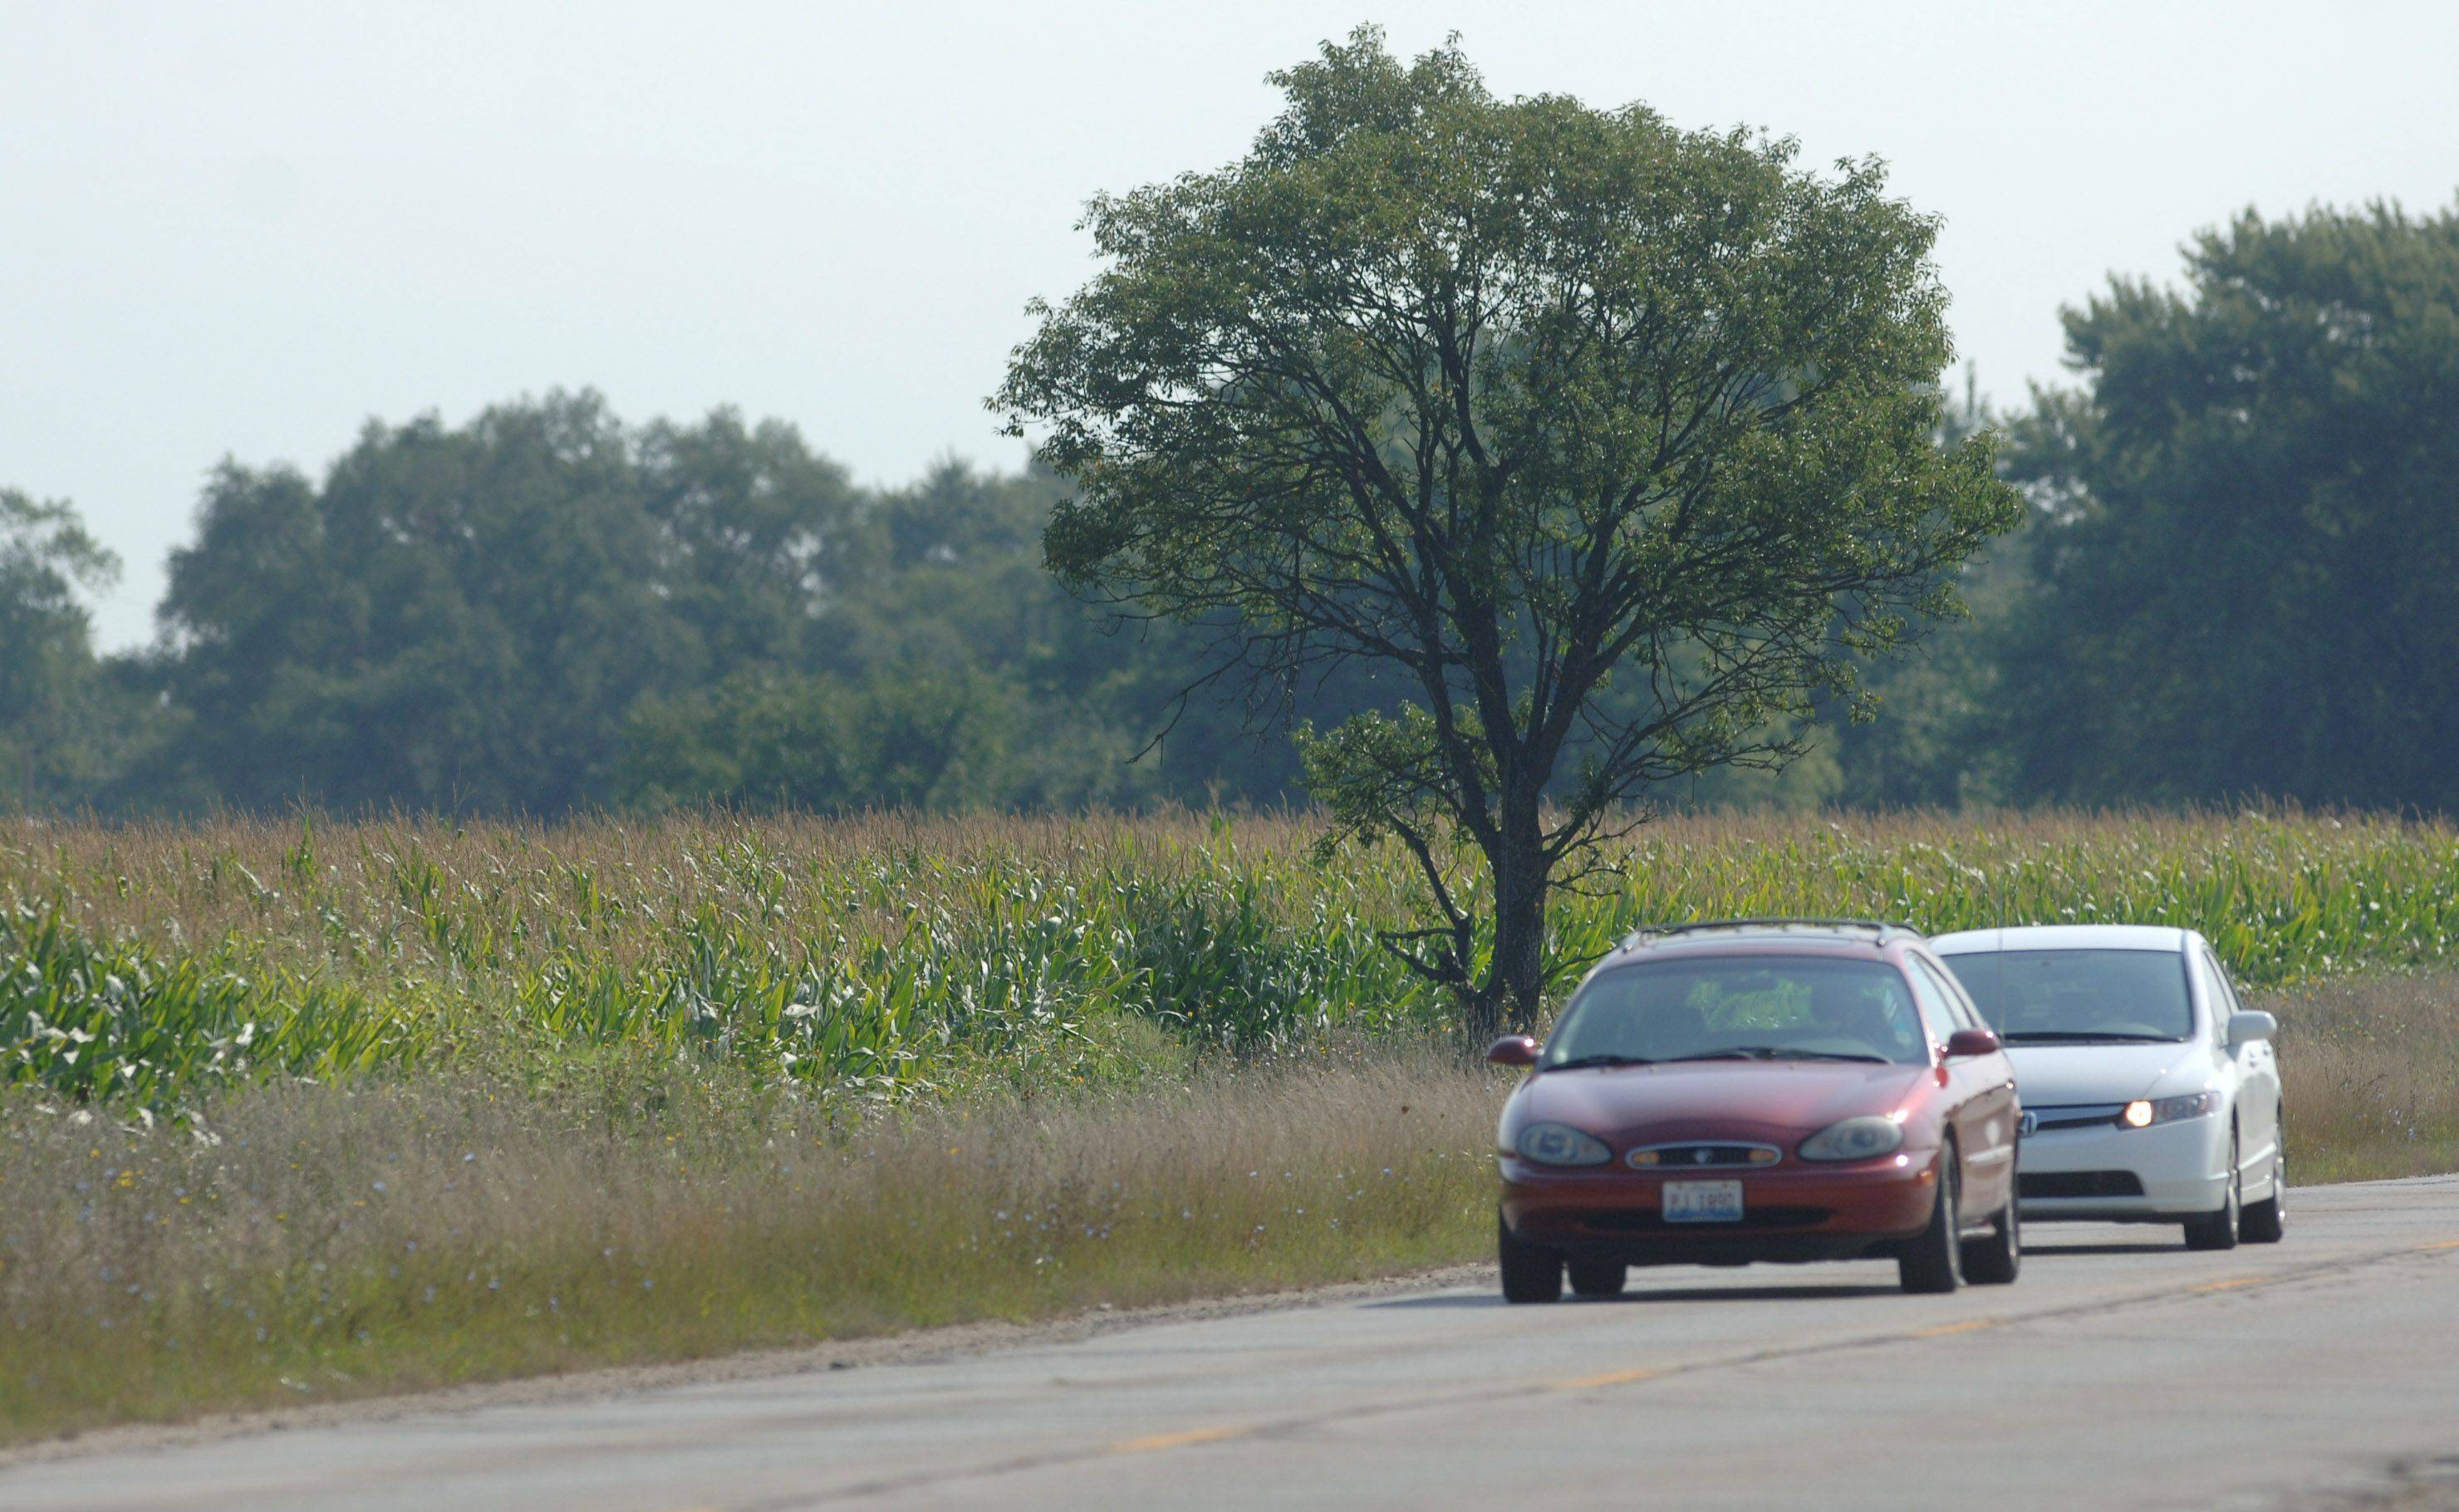 The College of Lake County has suggested this farm field north of Center Street and west of Route 45 in Grayslake for a local food learning center. It�s owned by the Lake County Forest Preserve District.